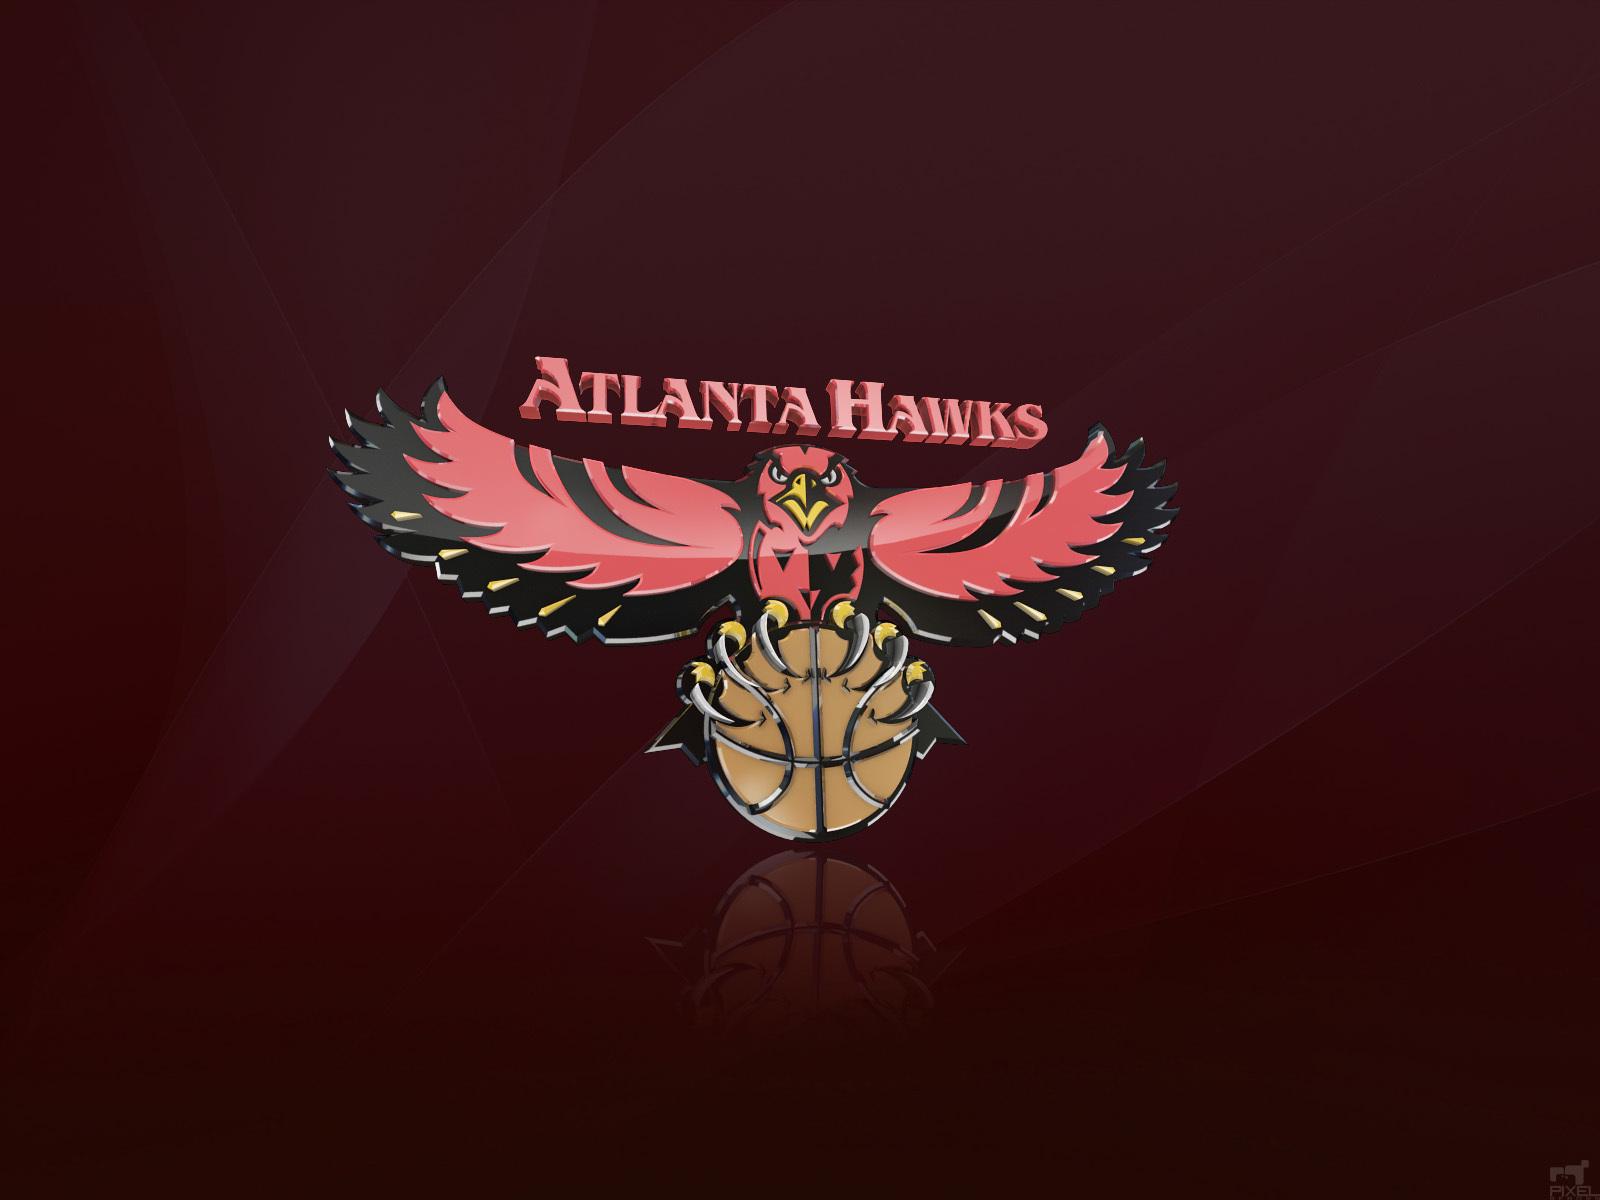 atlanta hawks logo nba HD Wallpaper